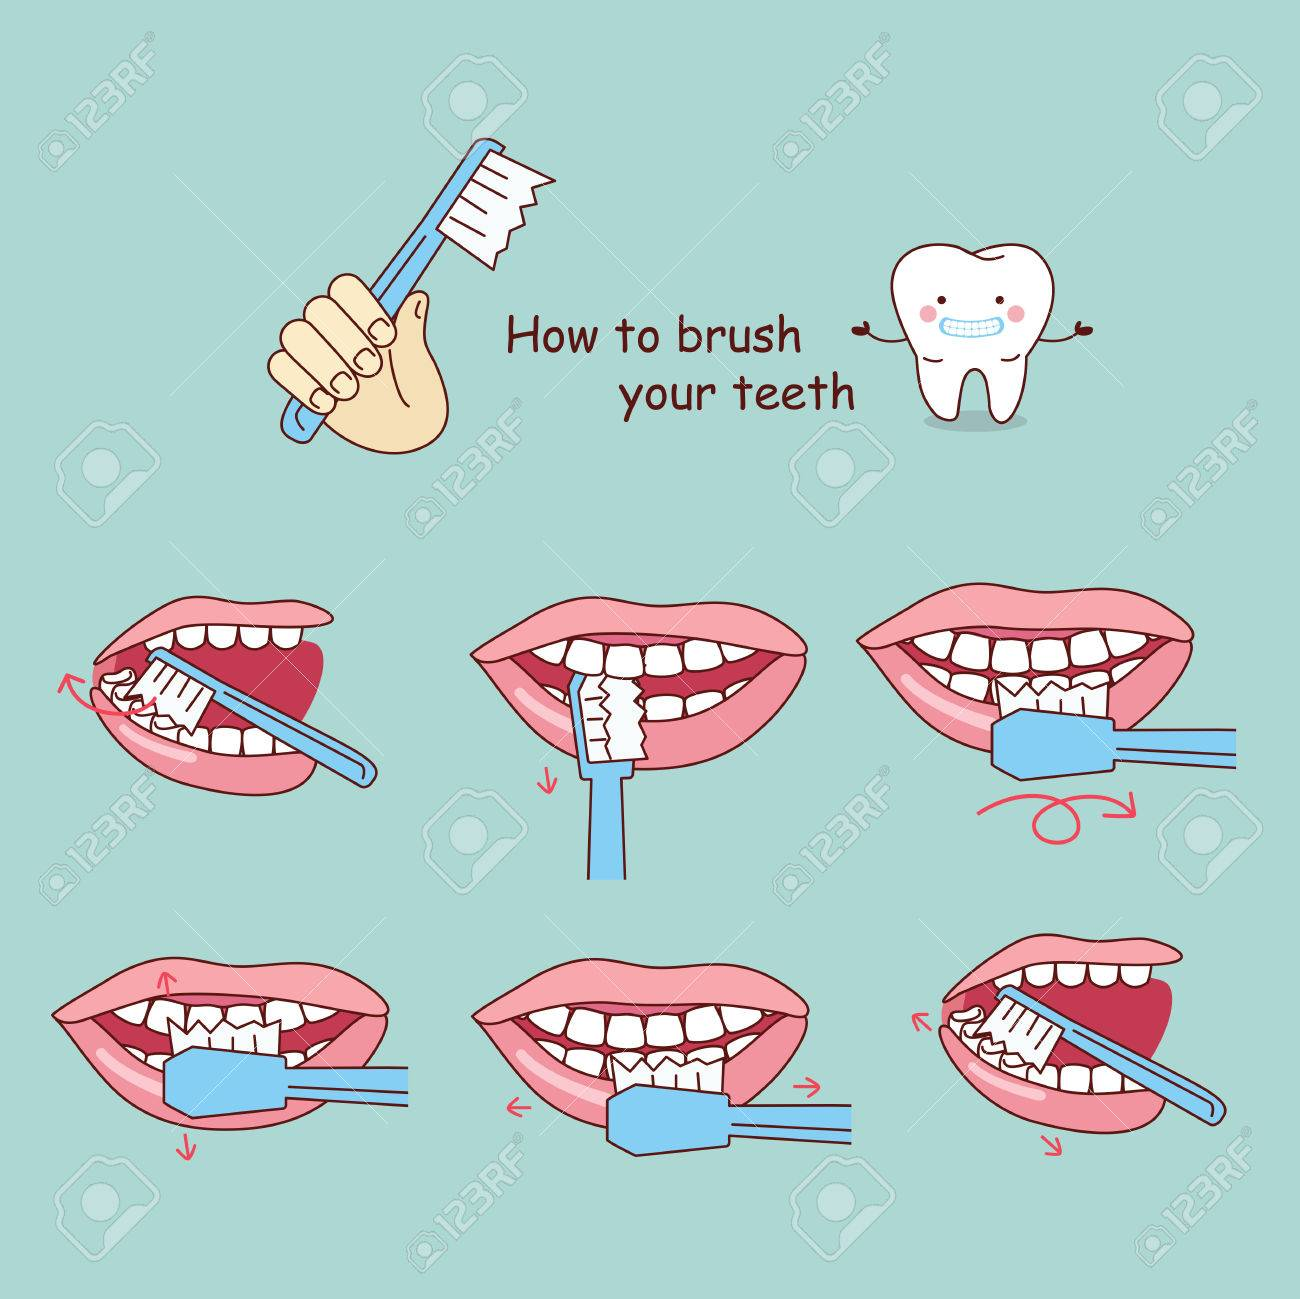 How to Brush Your Teeth recommendations